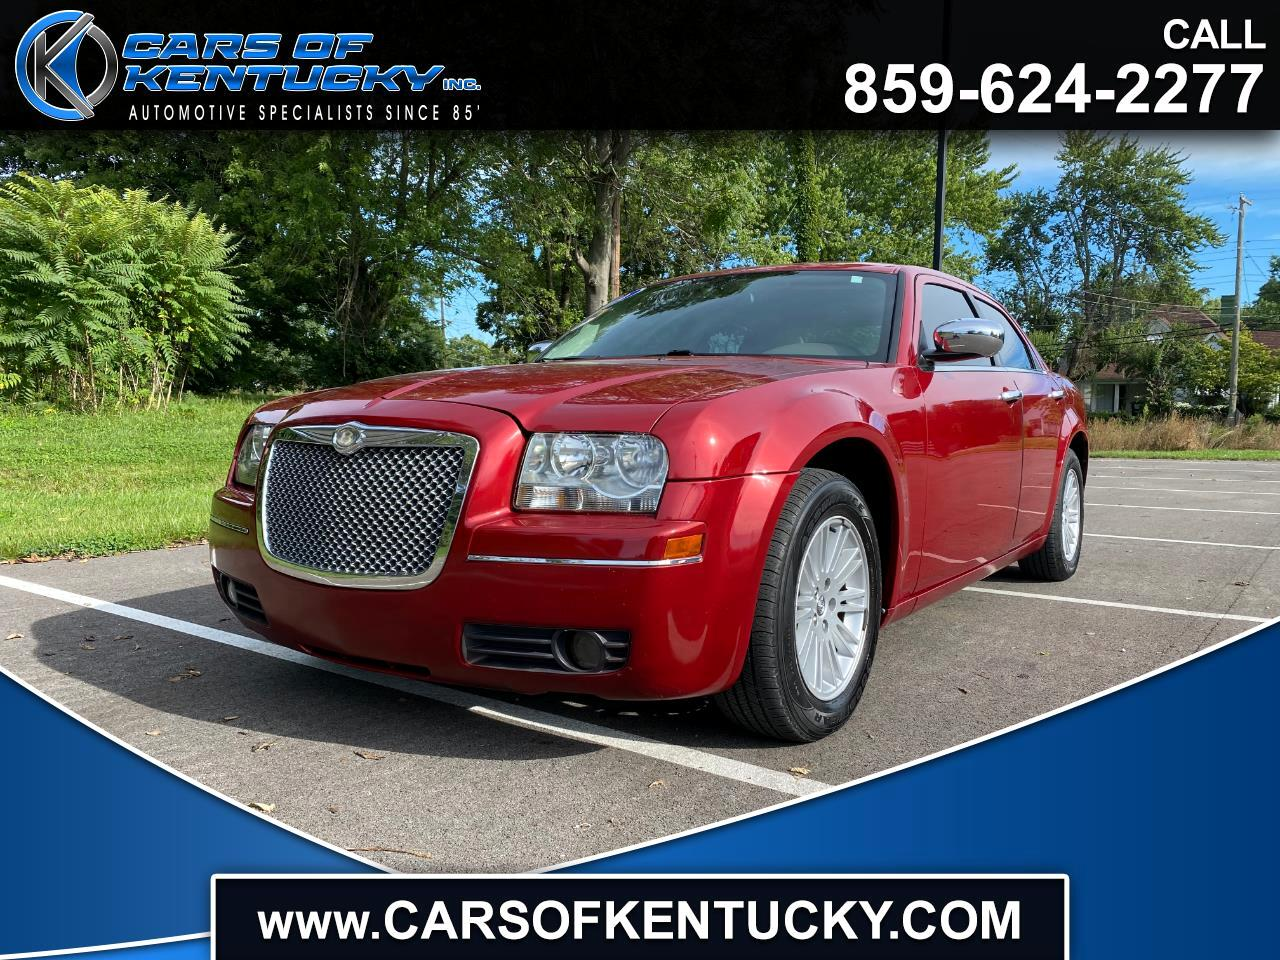 Chrysler 300 4dr Sdn LX RWD *Ltd Avail* 2009